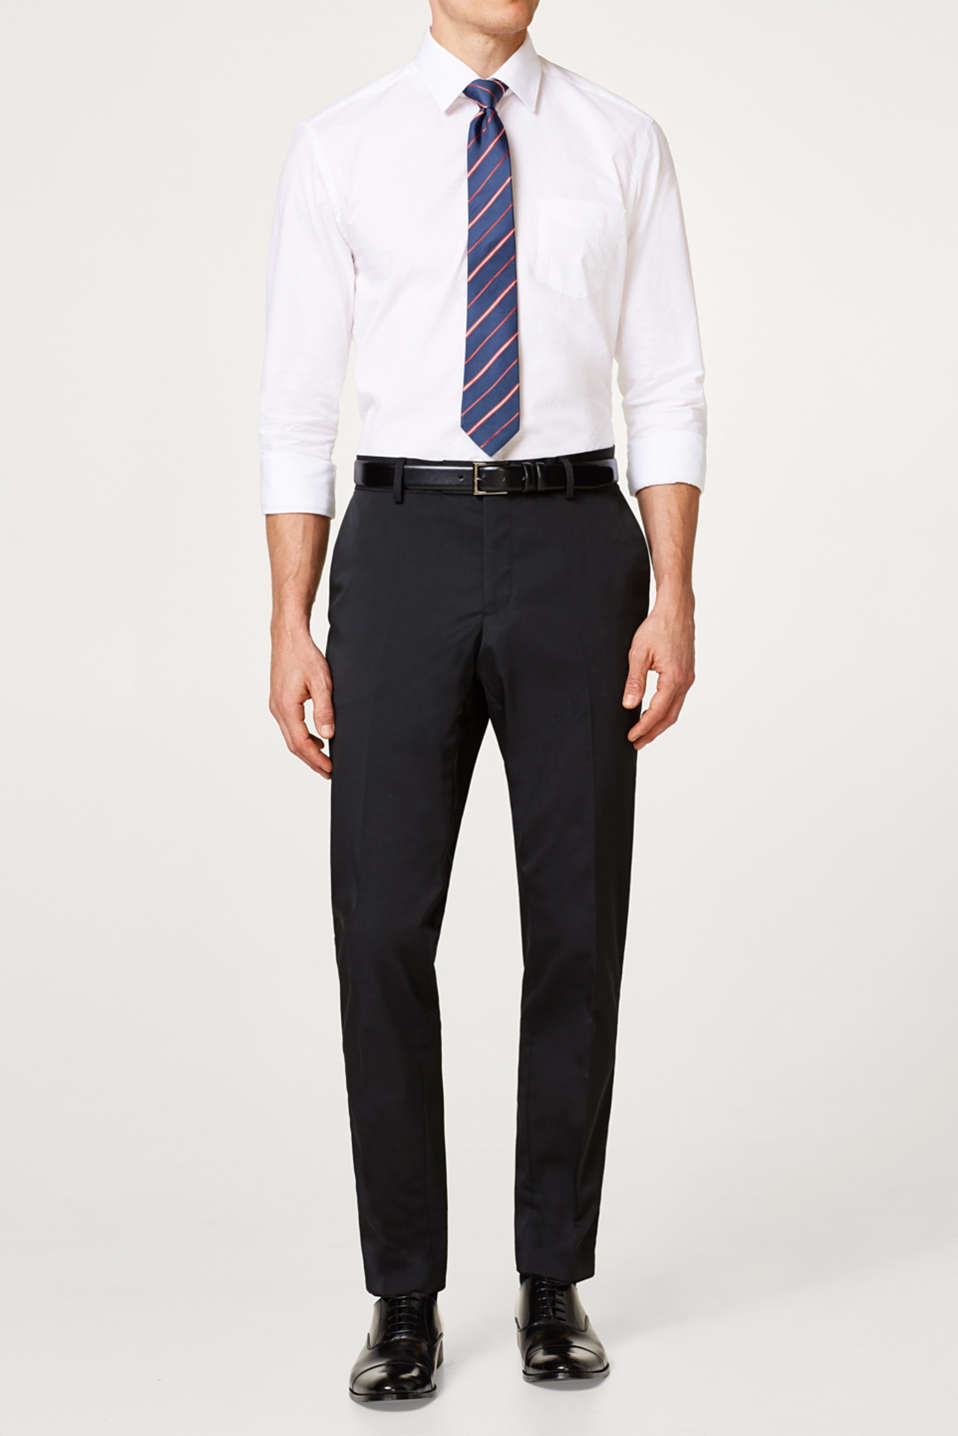 Esprit - Suit trousers in stretchy twill